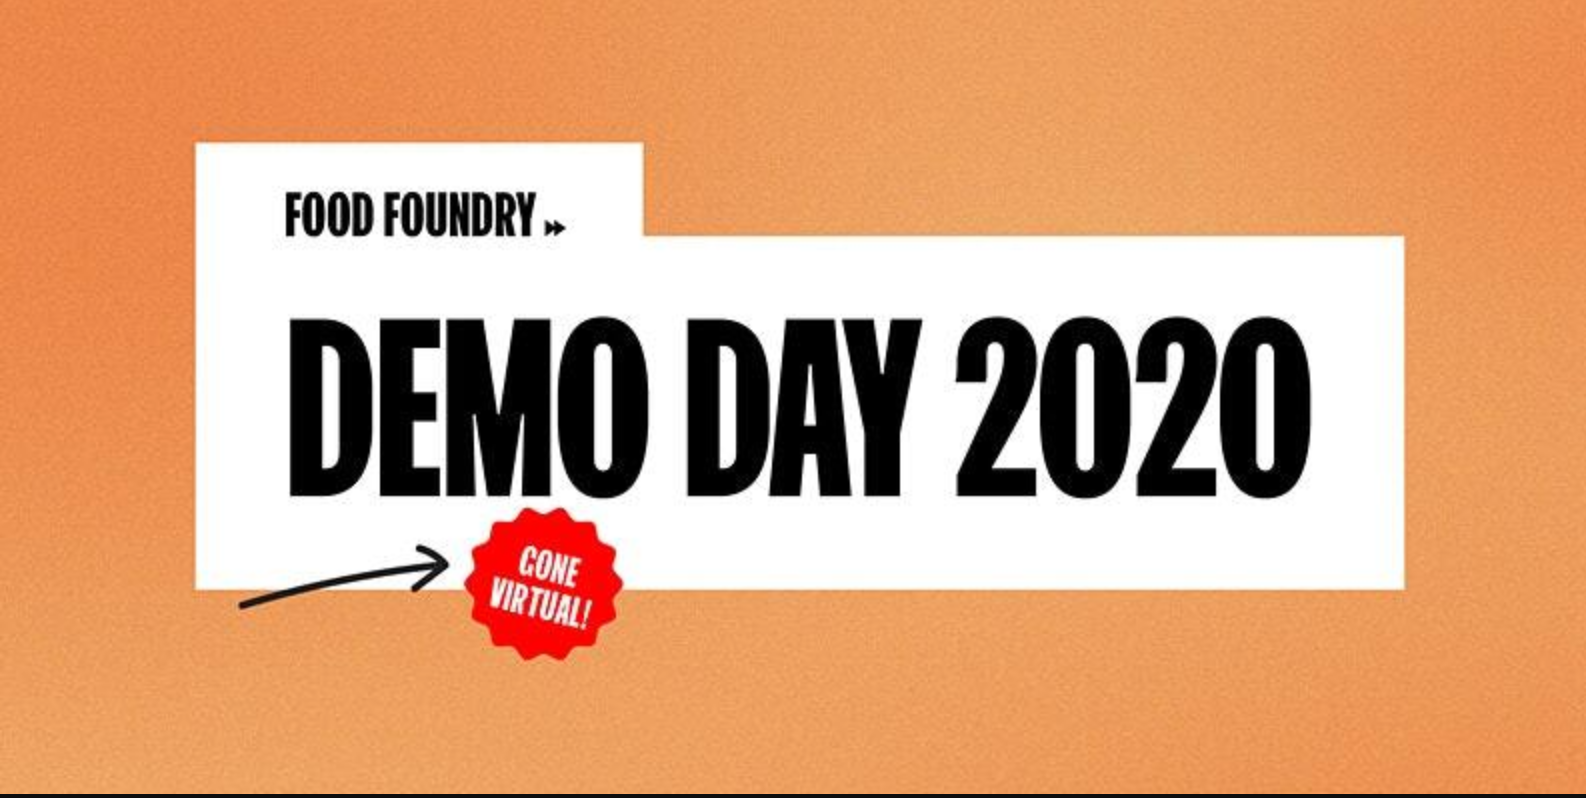 Food Foundry's Demo Day